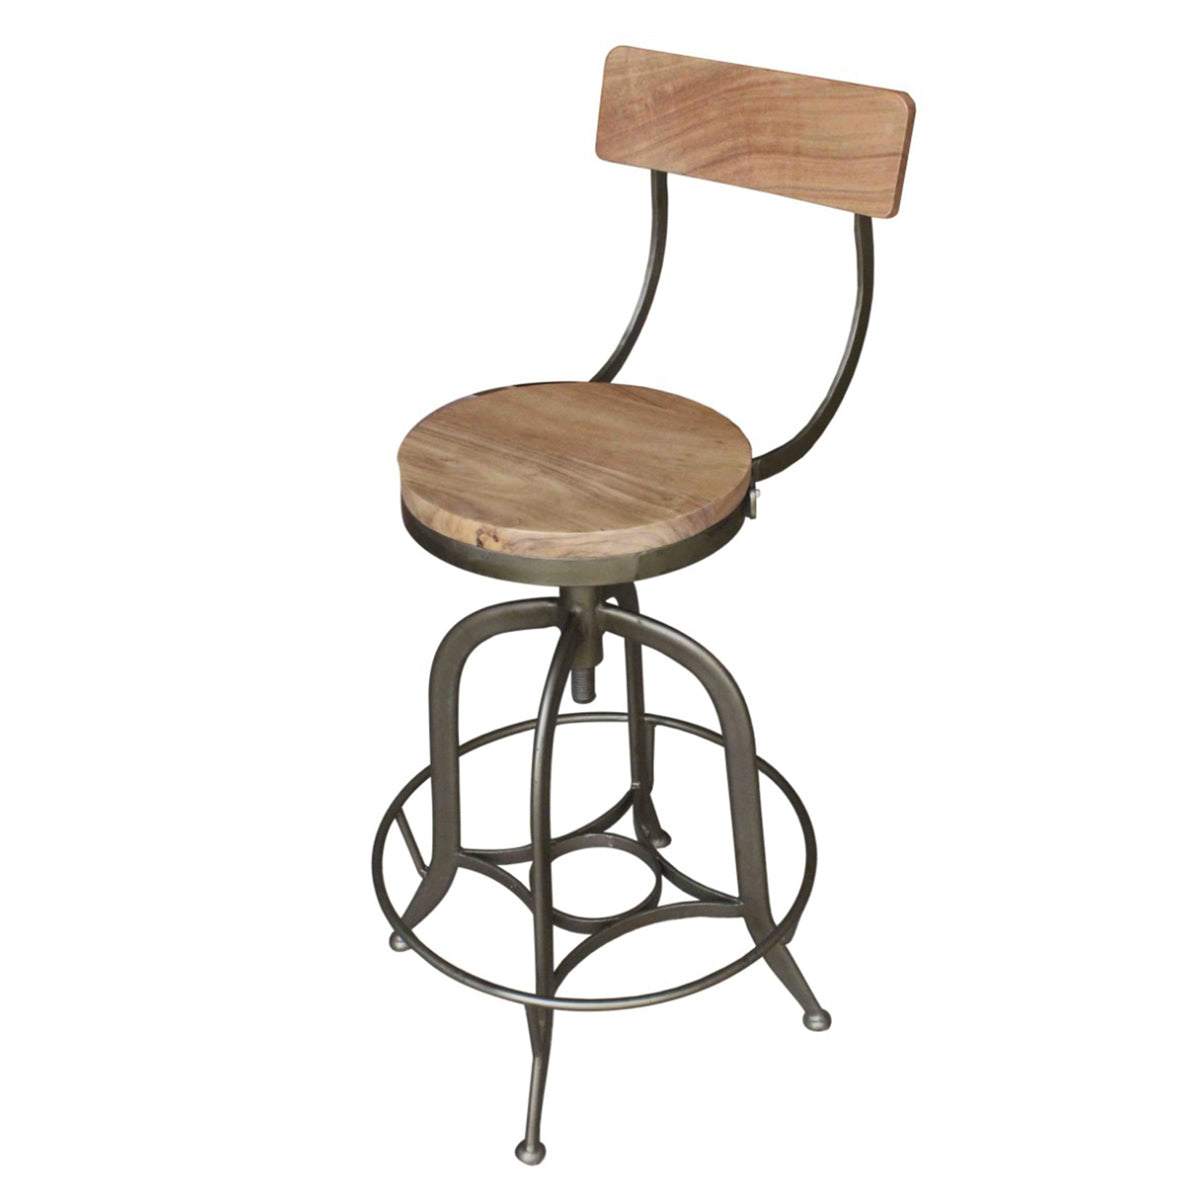 Bale Industrial Full Back Vintage Stool by New Pacific Direct - 1280016